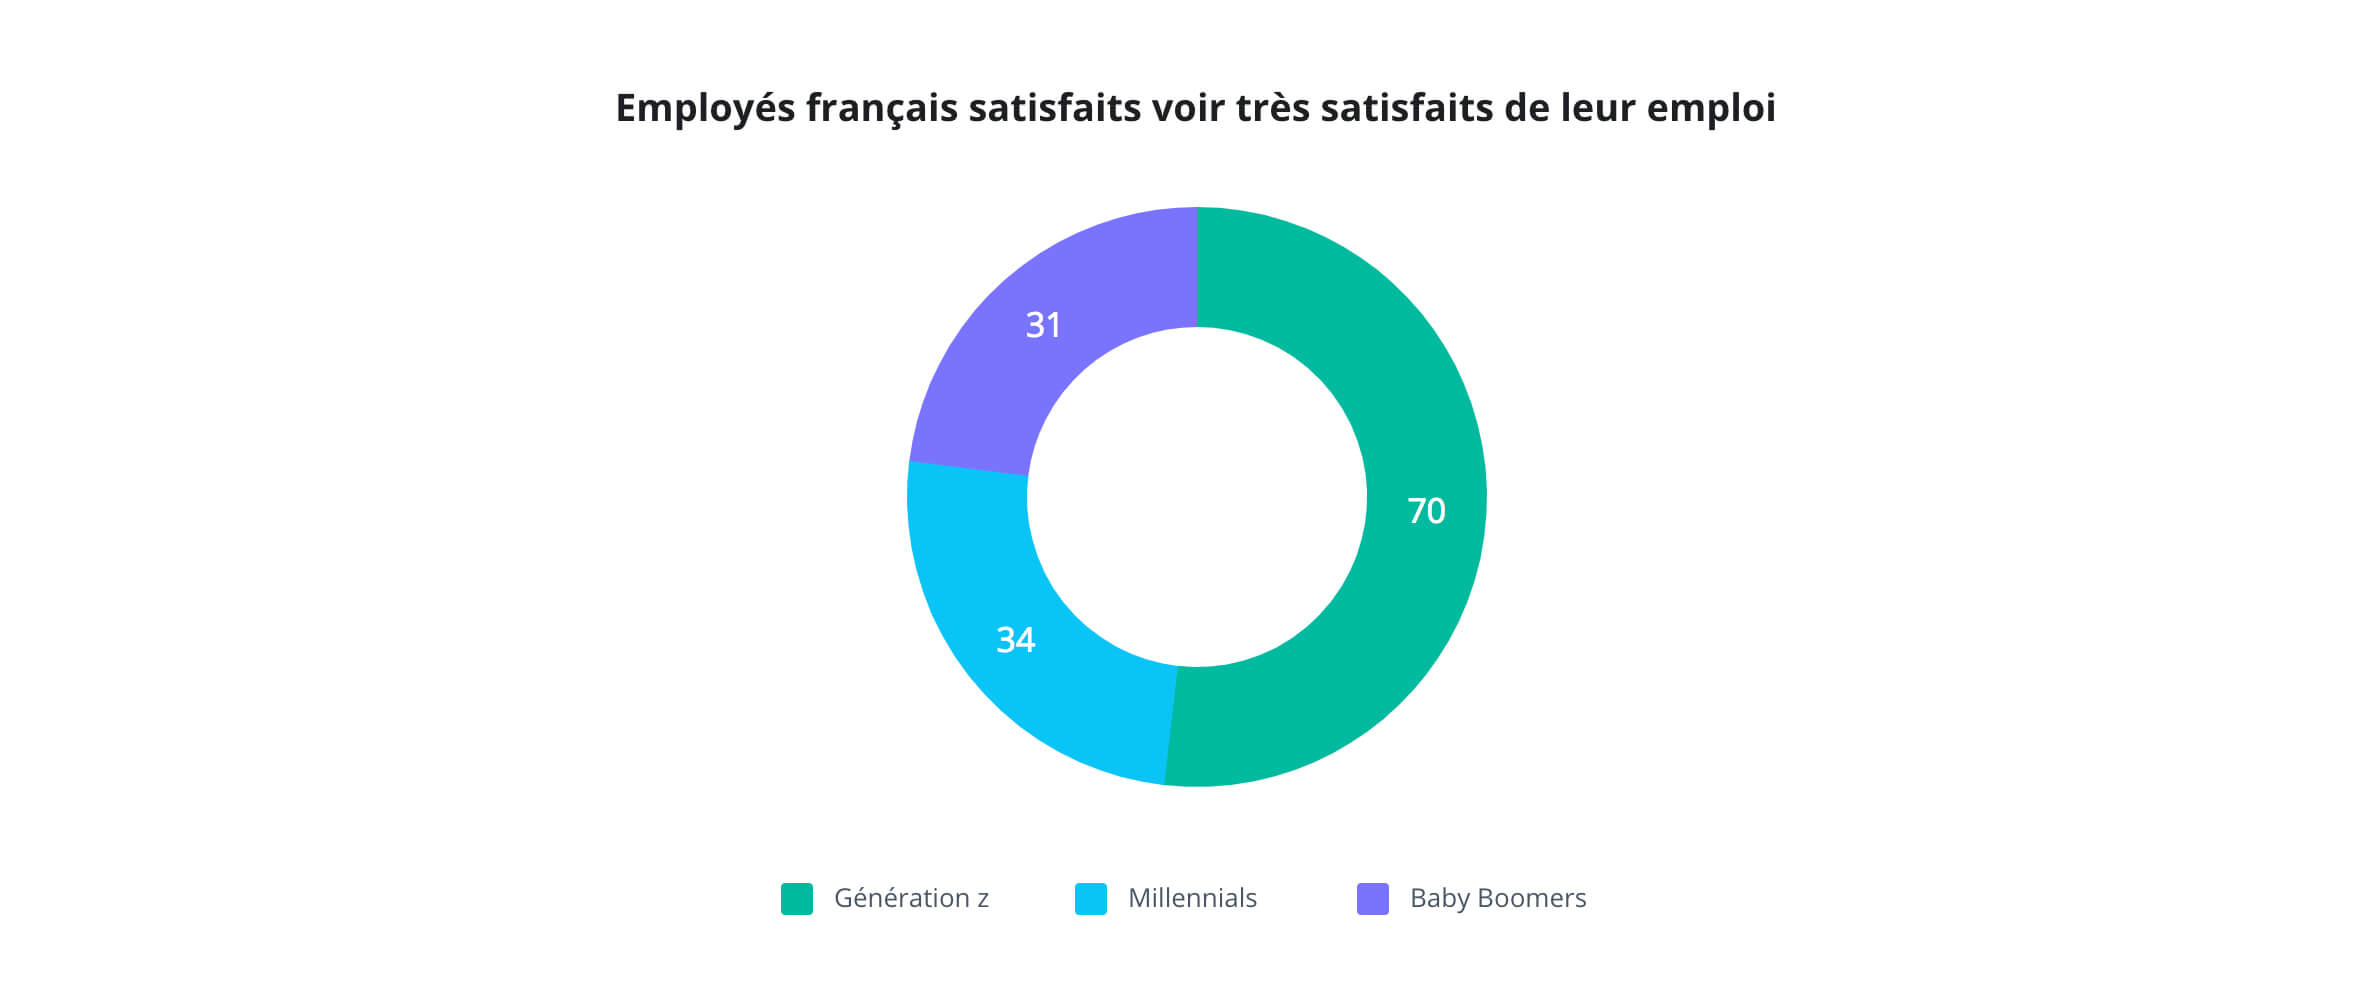 Wrike Happiness Index 2018 : satisfaction des employés français par rapport à leur job